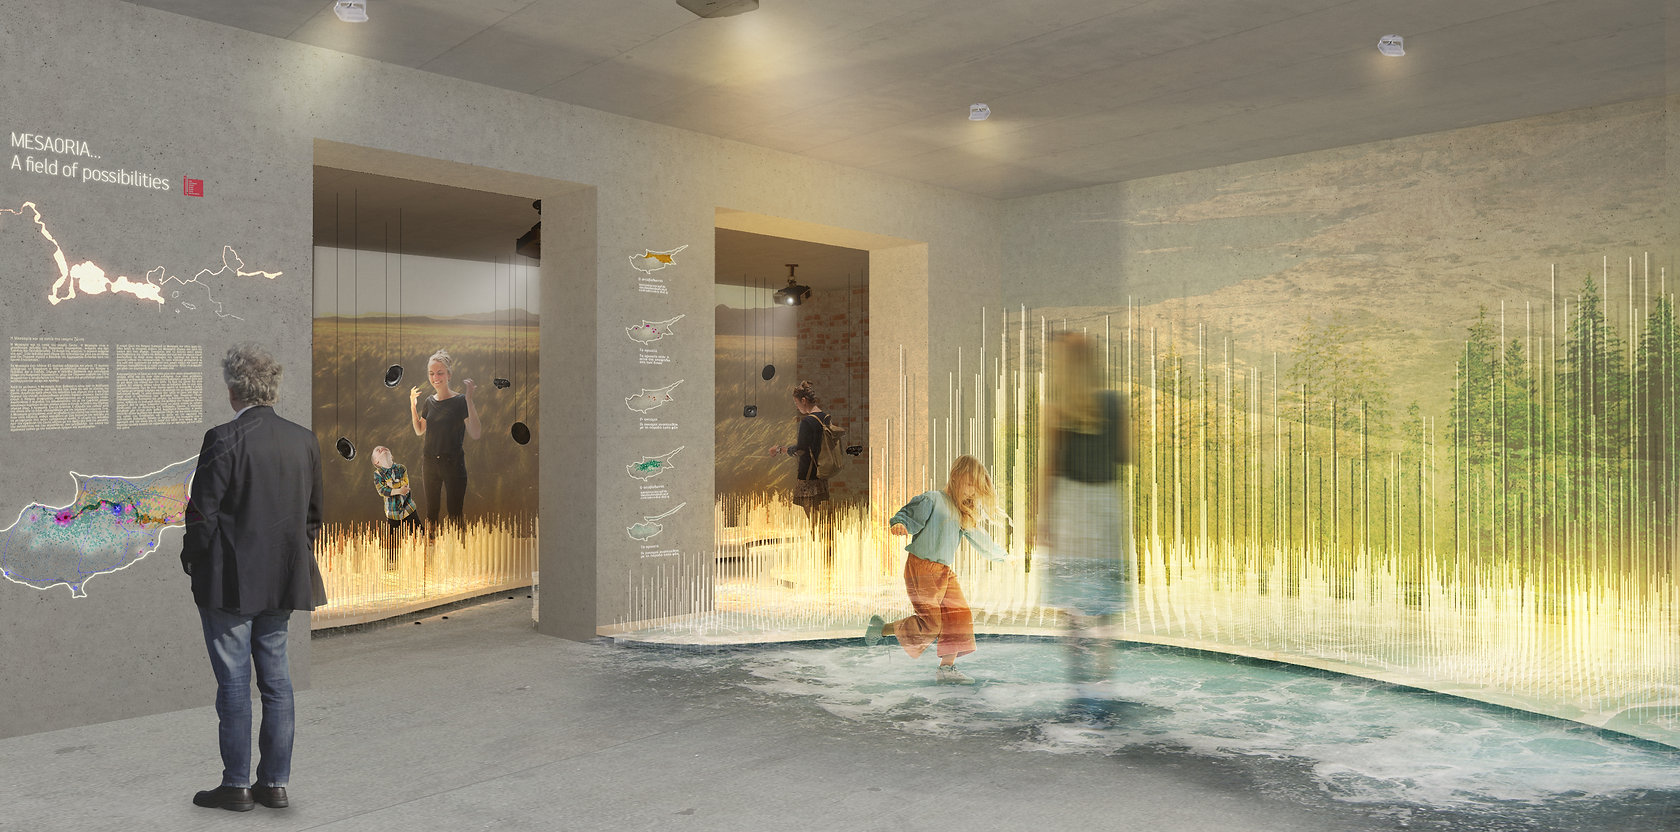 Venice Architecture Biennale 2021   Cyprus Pavilion   Mesaoria_A field of possibilities_40.22.Architects